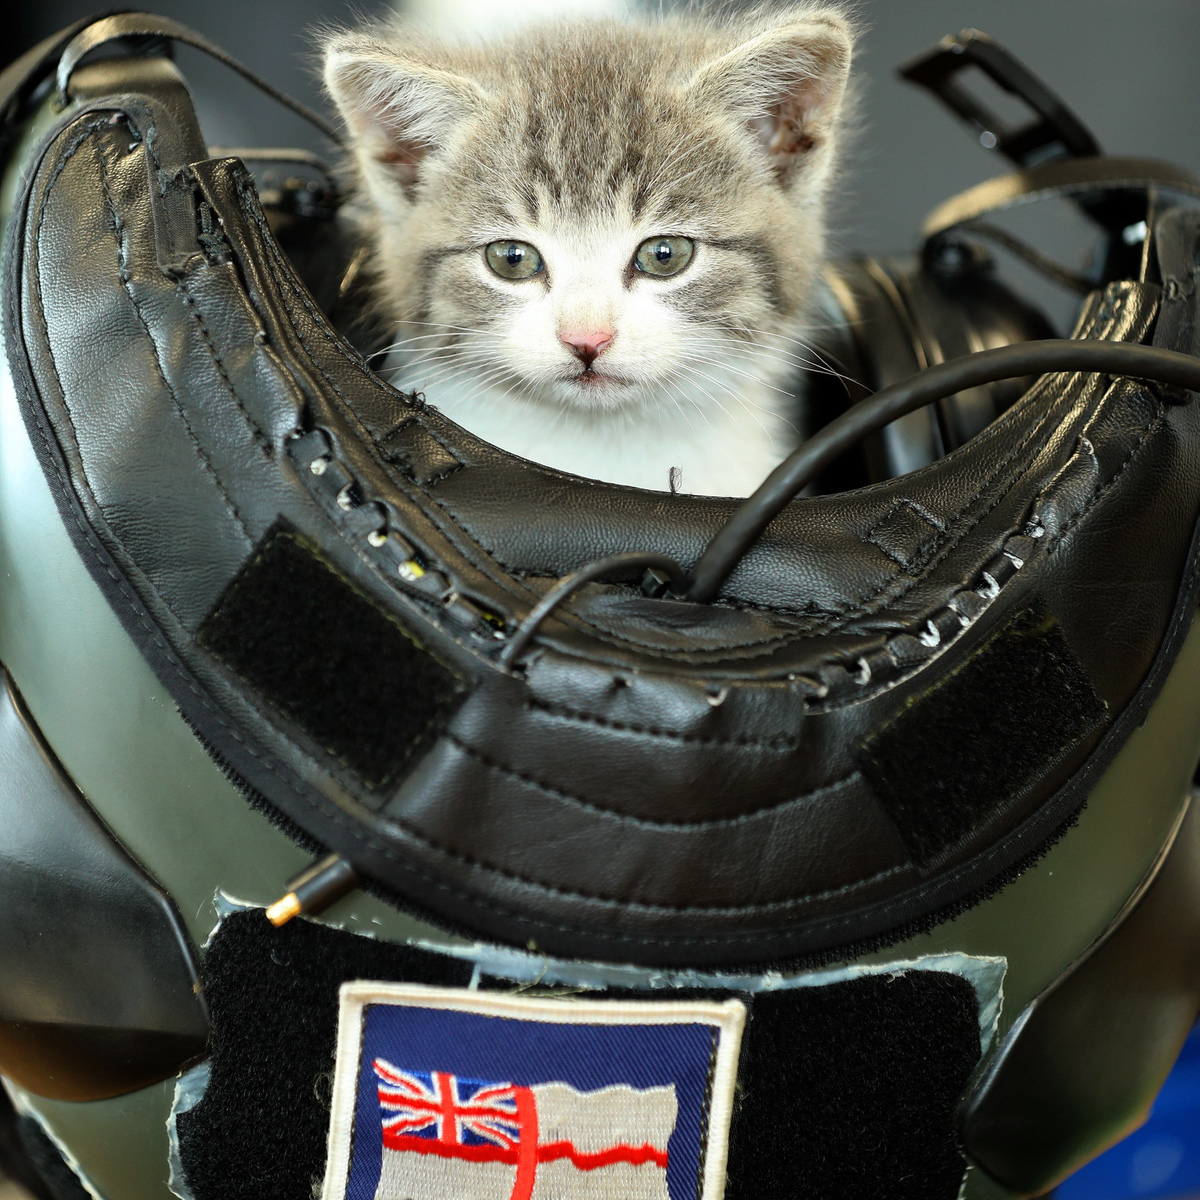 "Meet Tigger – the kitten which survived a 300-mile journey hiding INSIDE the bumper of a navy helicopter pilot's car. See SWNS story SWKITTEN. The cat endured a day's journey from Birmingham Airport to the Royal Naval Air Station Culdrose near Helston in Cornwall clinging to the rear bumper of Lieutenant Nick Grimmer's BMW. It was only the day after the epic journey that 32-year-old Nick heard ""very quiet meowing"" coming from his car – and began to investigate. ""I'd landed at Birmingham after a holiday and travelled via Bristol and Bath before arriving in Cornwall quite late,"" said Nick, who flies submarine–hunting Merlin helicopters for a living with 814 Naval Air Squadron – known as the Flying Tigers. ""I looked in the boot, under the bonnet and climbed all over and under it and still couldn't find what was making the noise. ""I called up some of our air engineers who came and helped me to start dismantling my pride and joy. On taking off the rear bumper we were greeted by a tiny tiger-striped kitten. ""He must have had a long journey but remarkably is unharmed. I am never late for work and was left with no option but to take my new friend in with me. The place he has felt most comfortable is in my flying helmet, which is the only place he is able to sleep."""